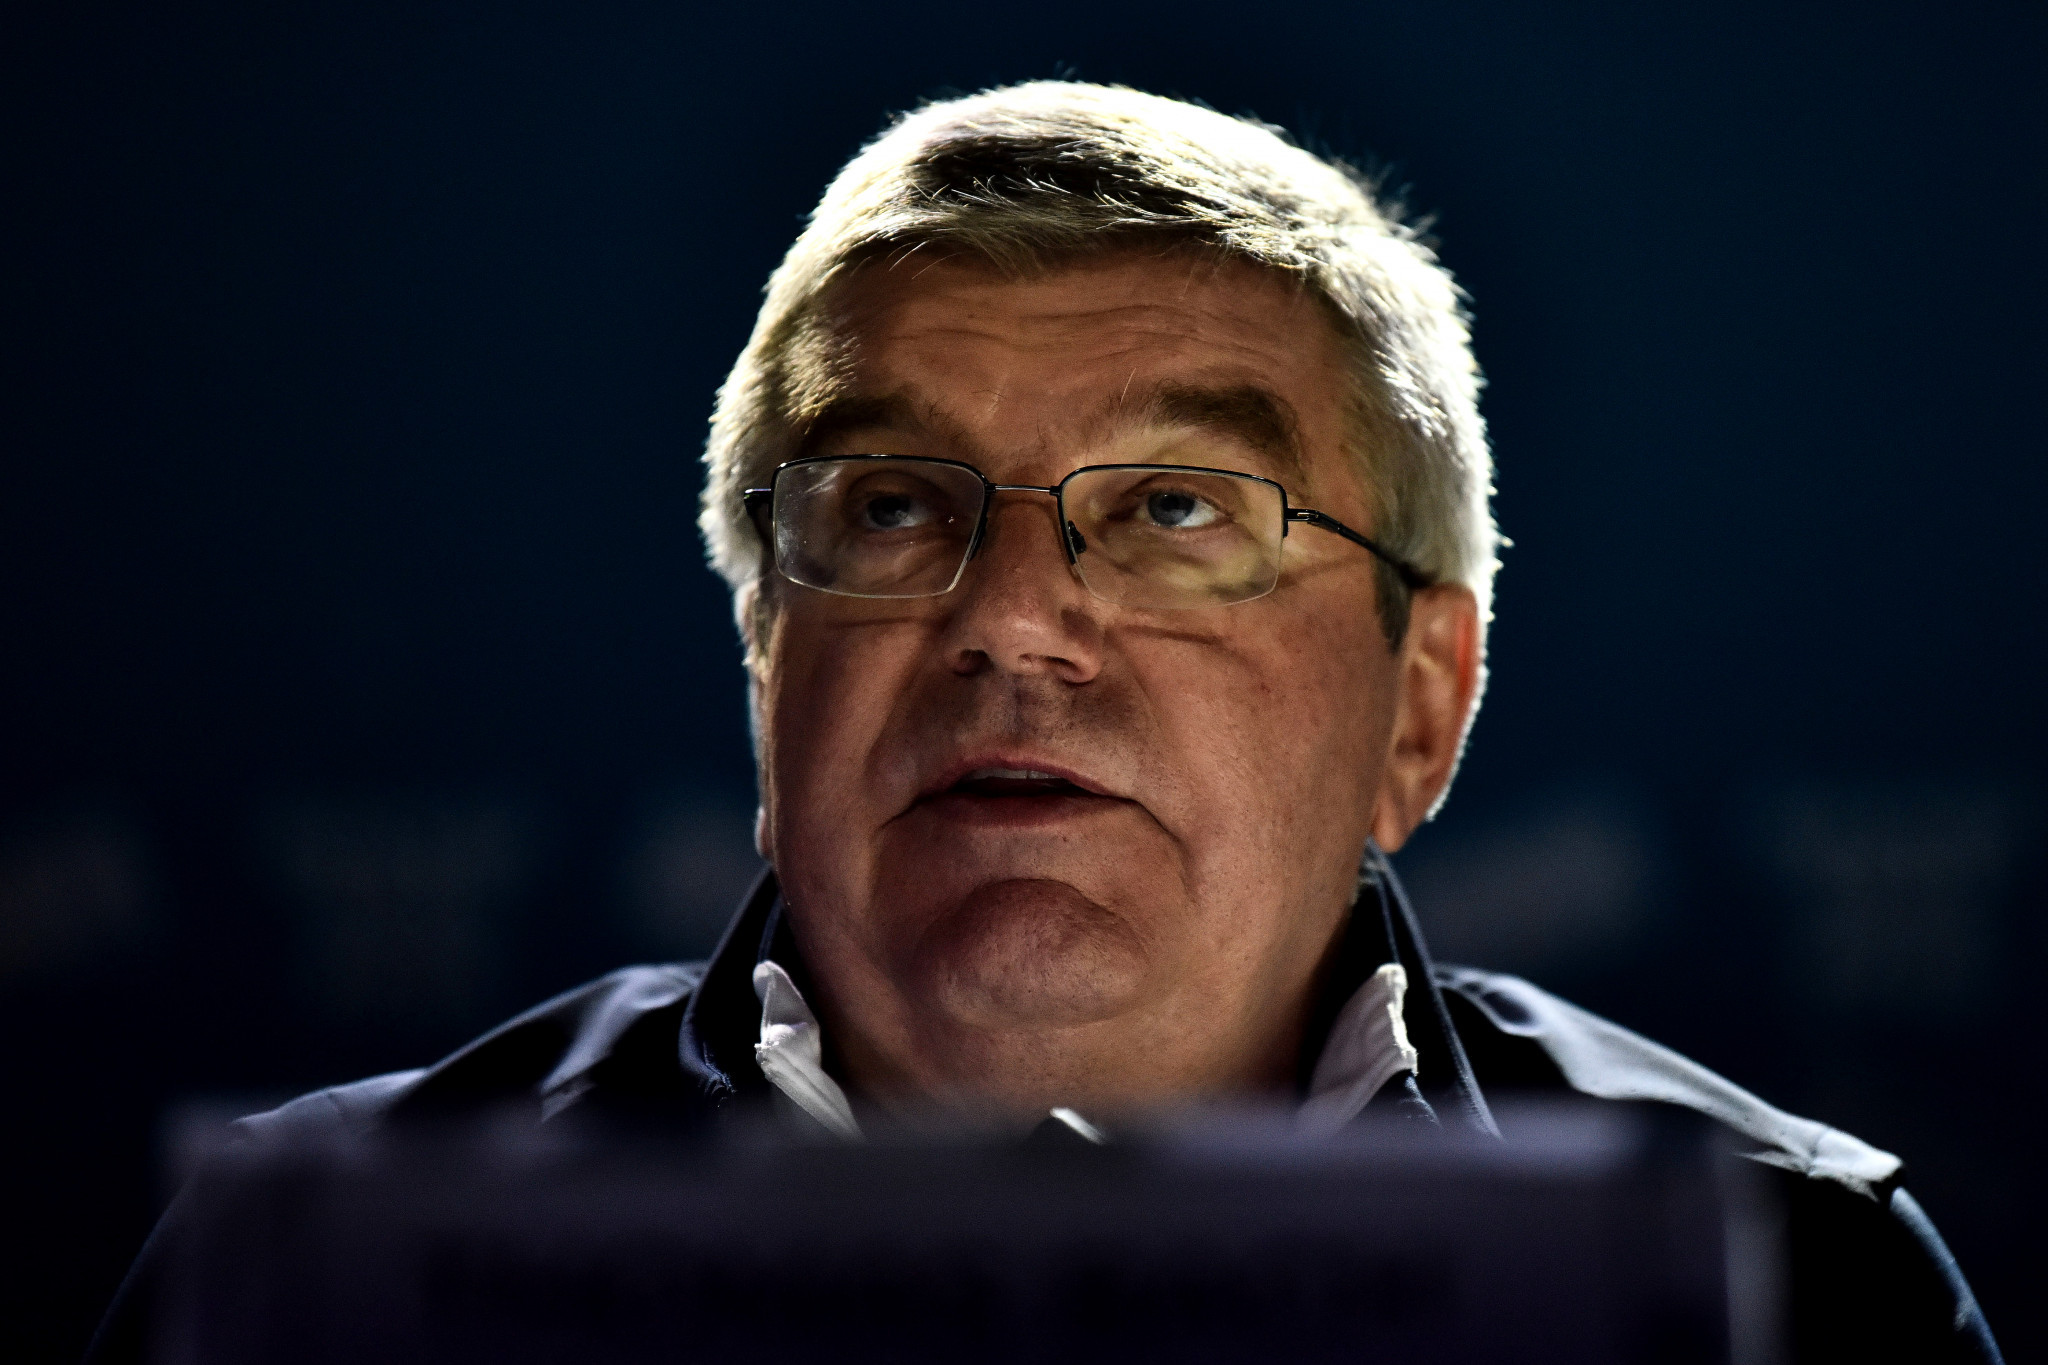 The IOC and its President Thomas Bach have directly and inherently warned Rakhimov's candidacy puts boxing's place at the Games in jeopardy ©Getty Images